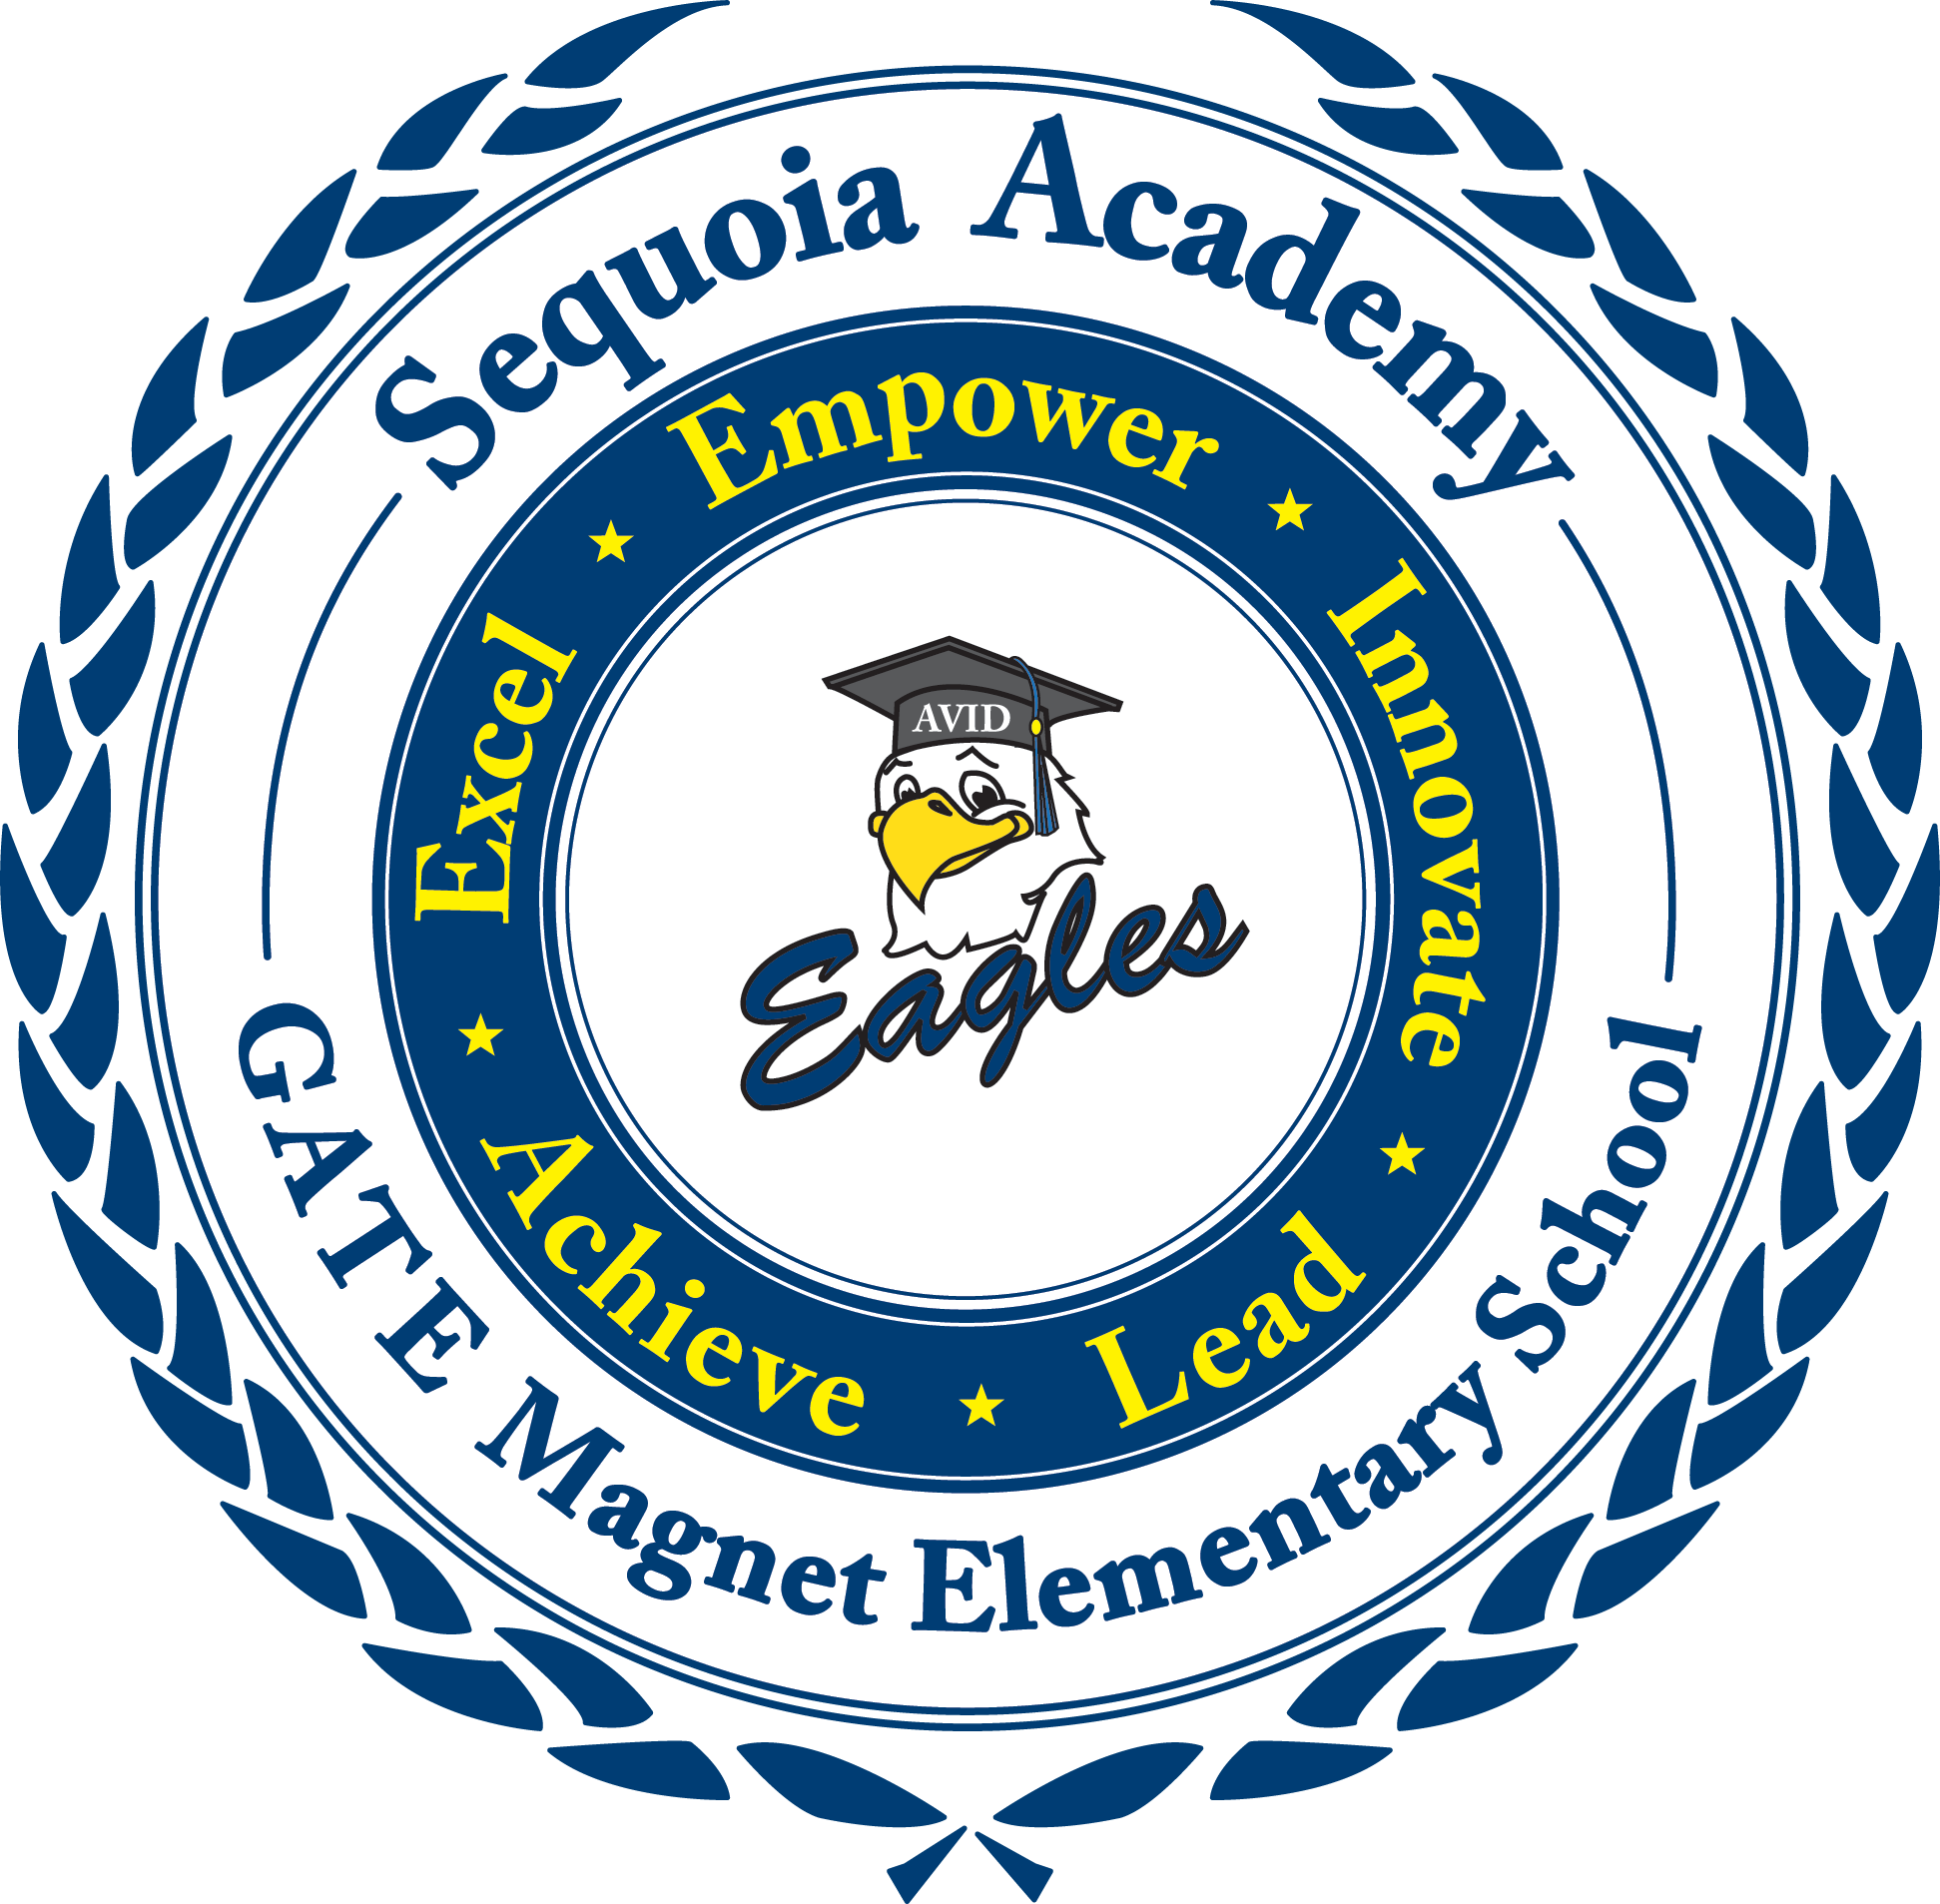 Gifted and Talented Education (GATE). Sequoia Logo